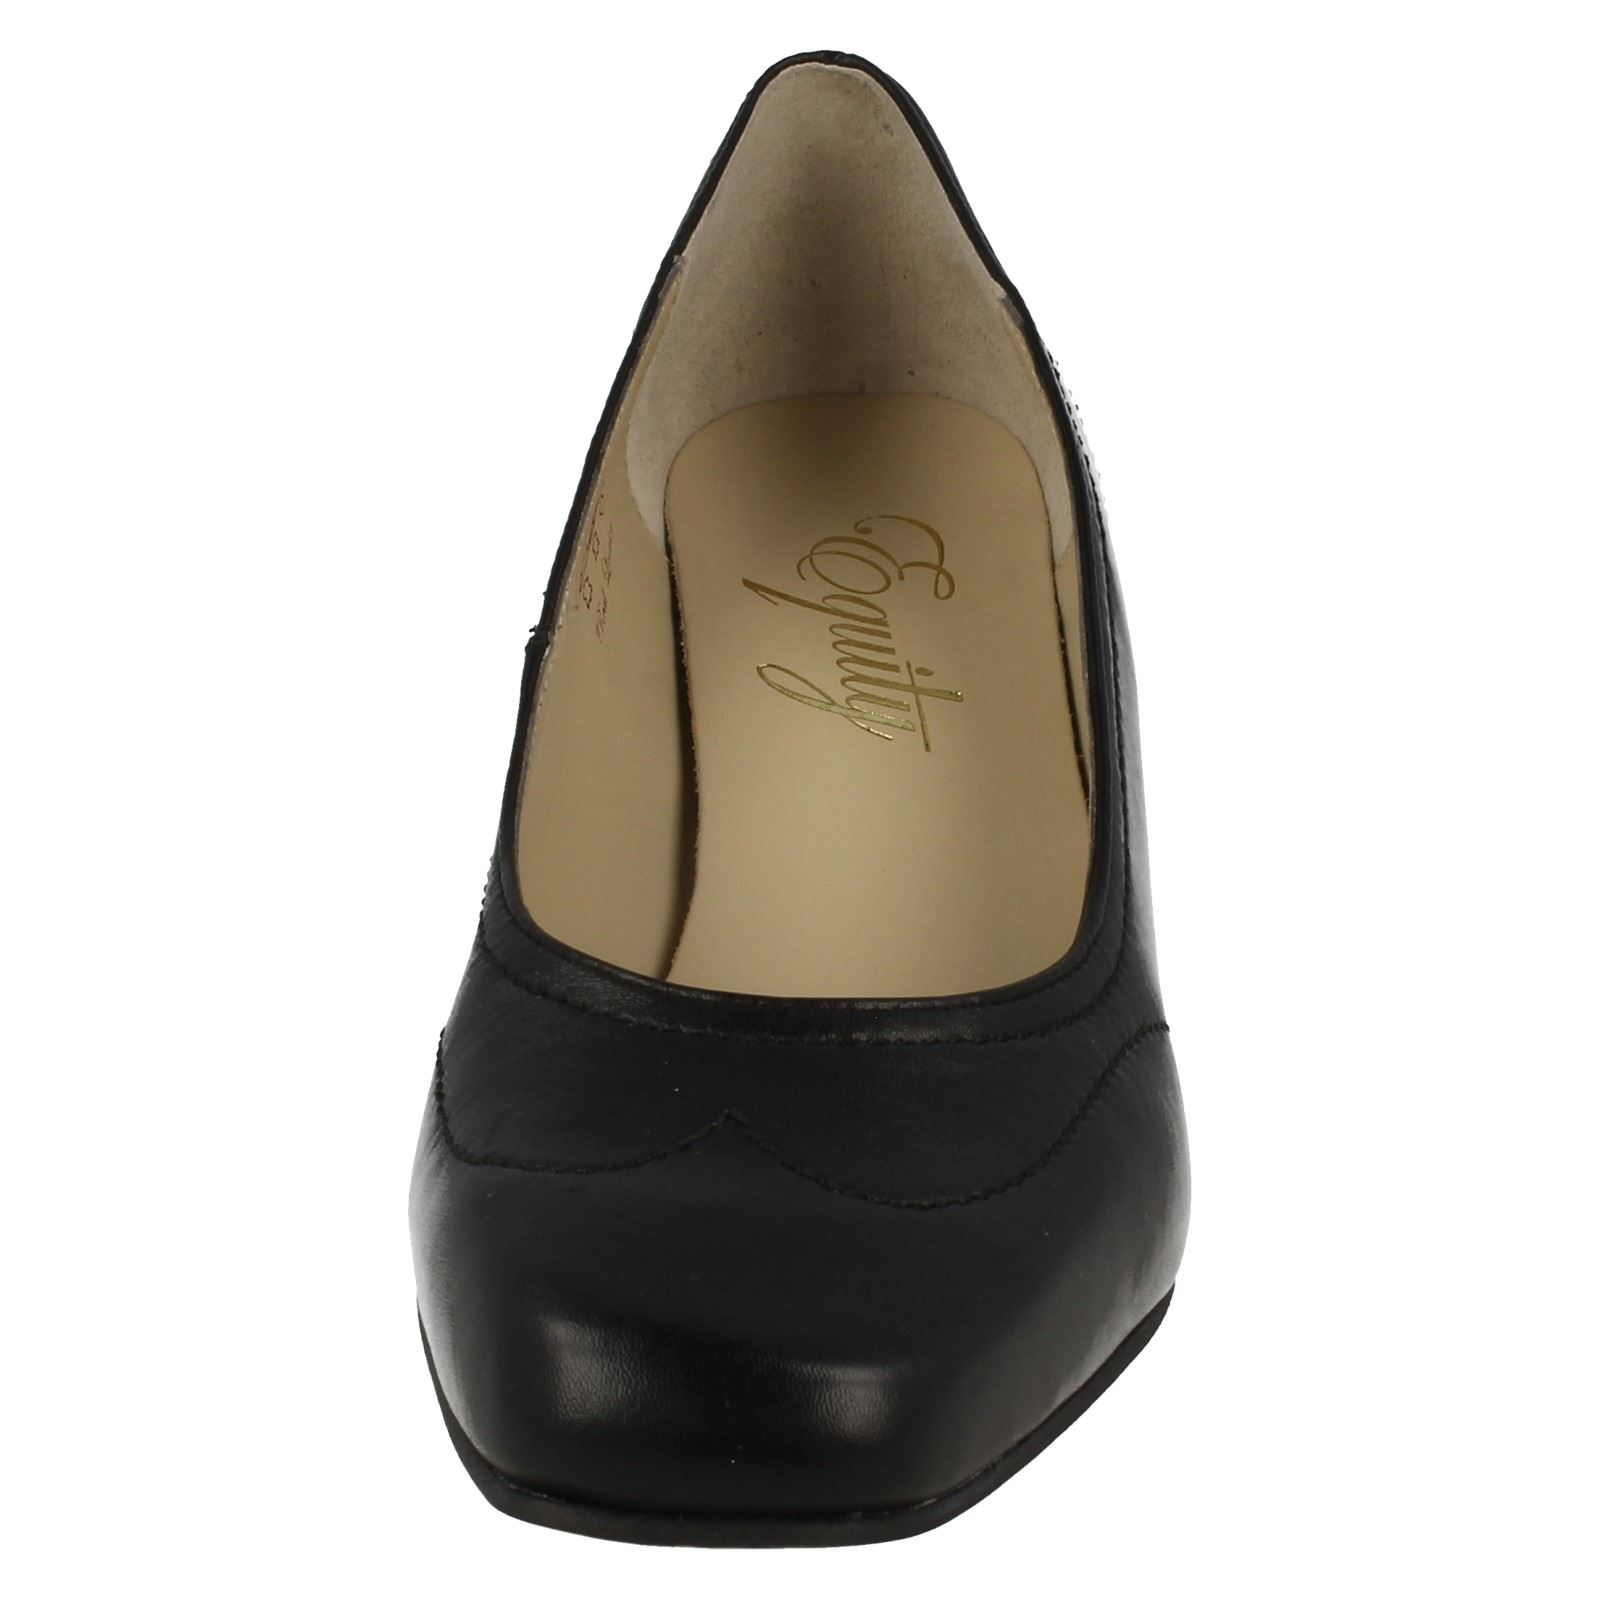 039-Ladies-Equity-039-Wide-Fitting-Court-Shoes-Alison